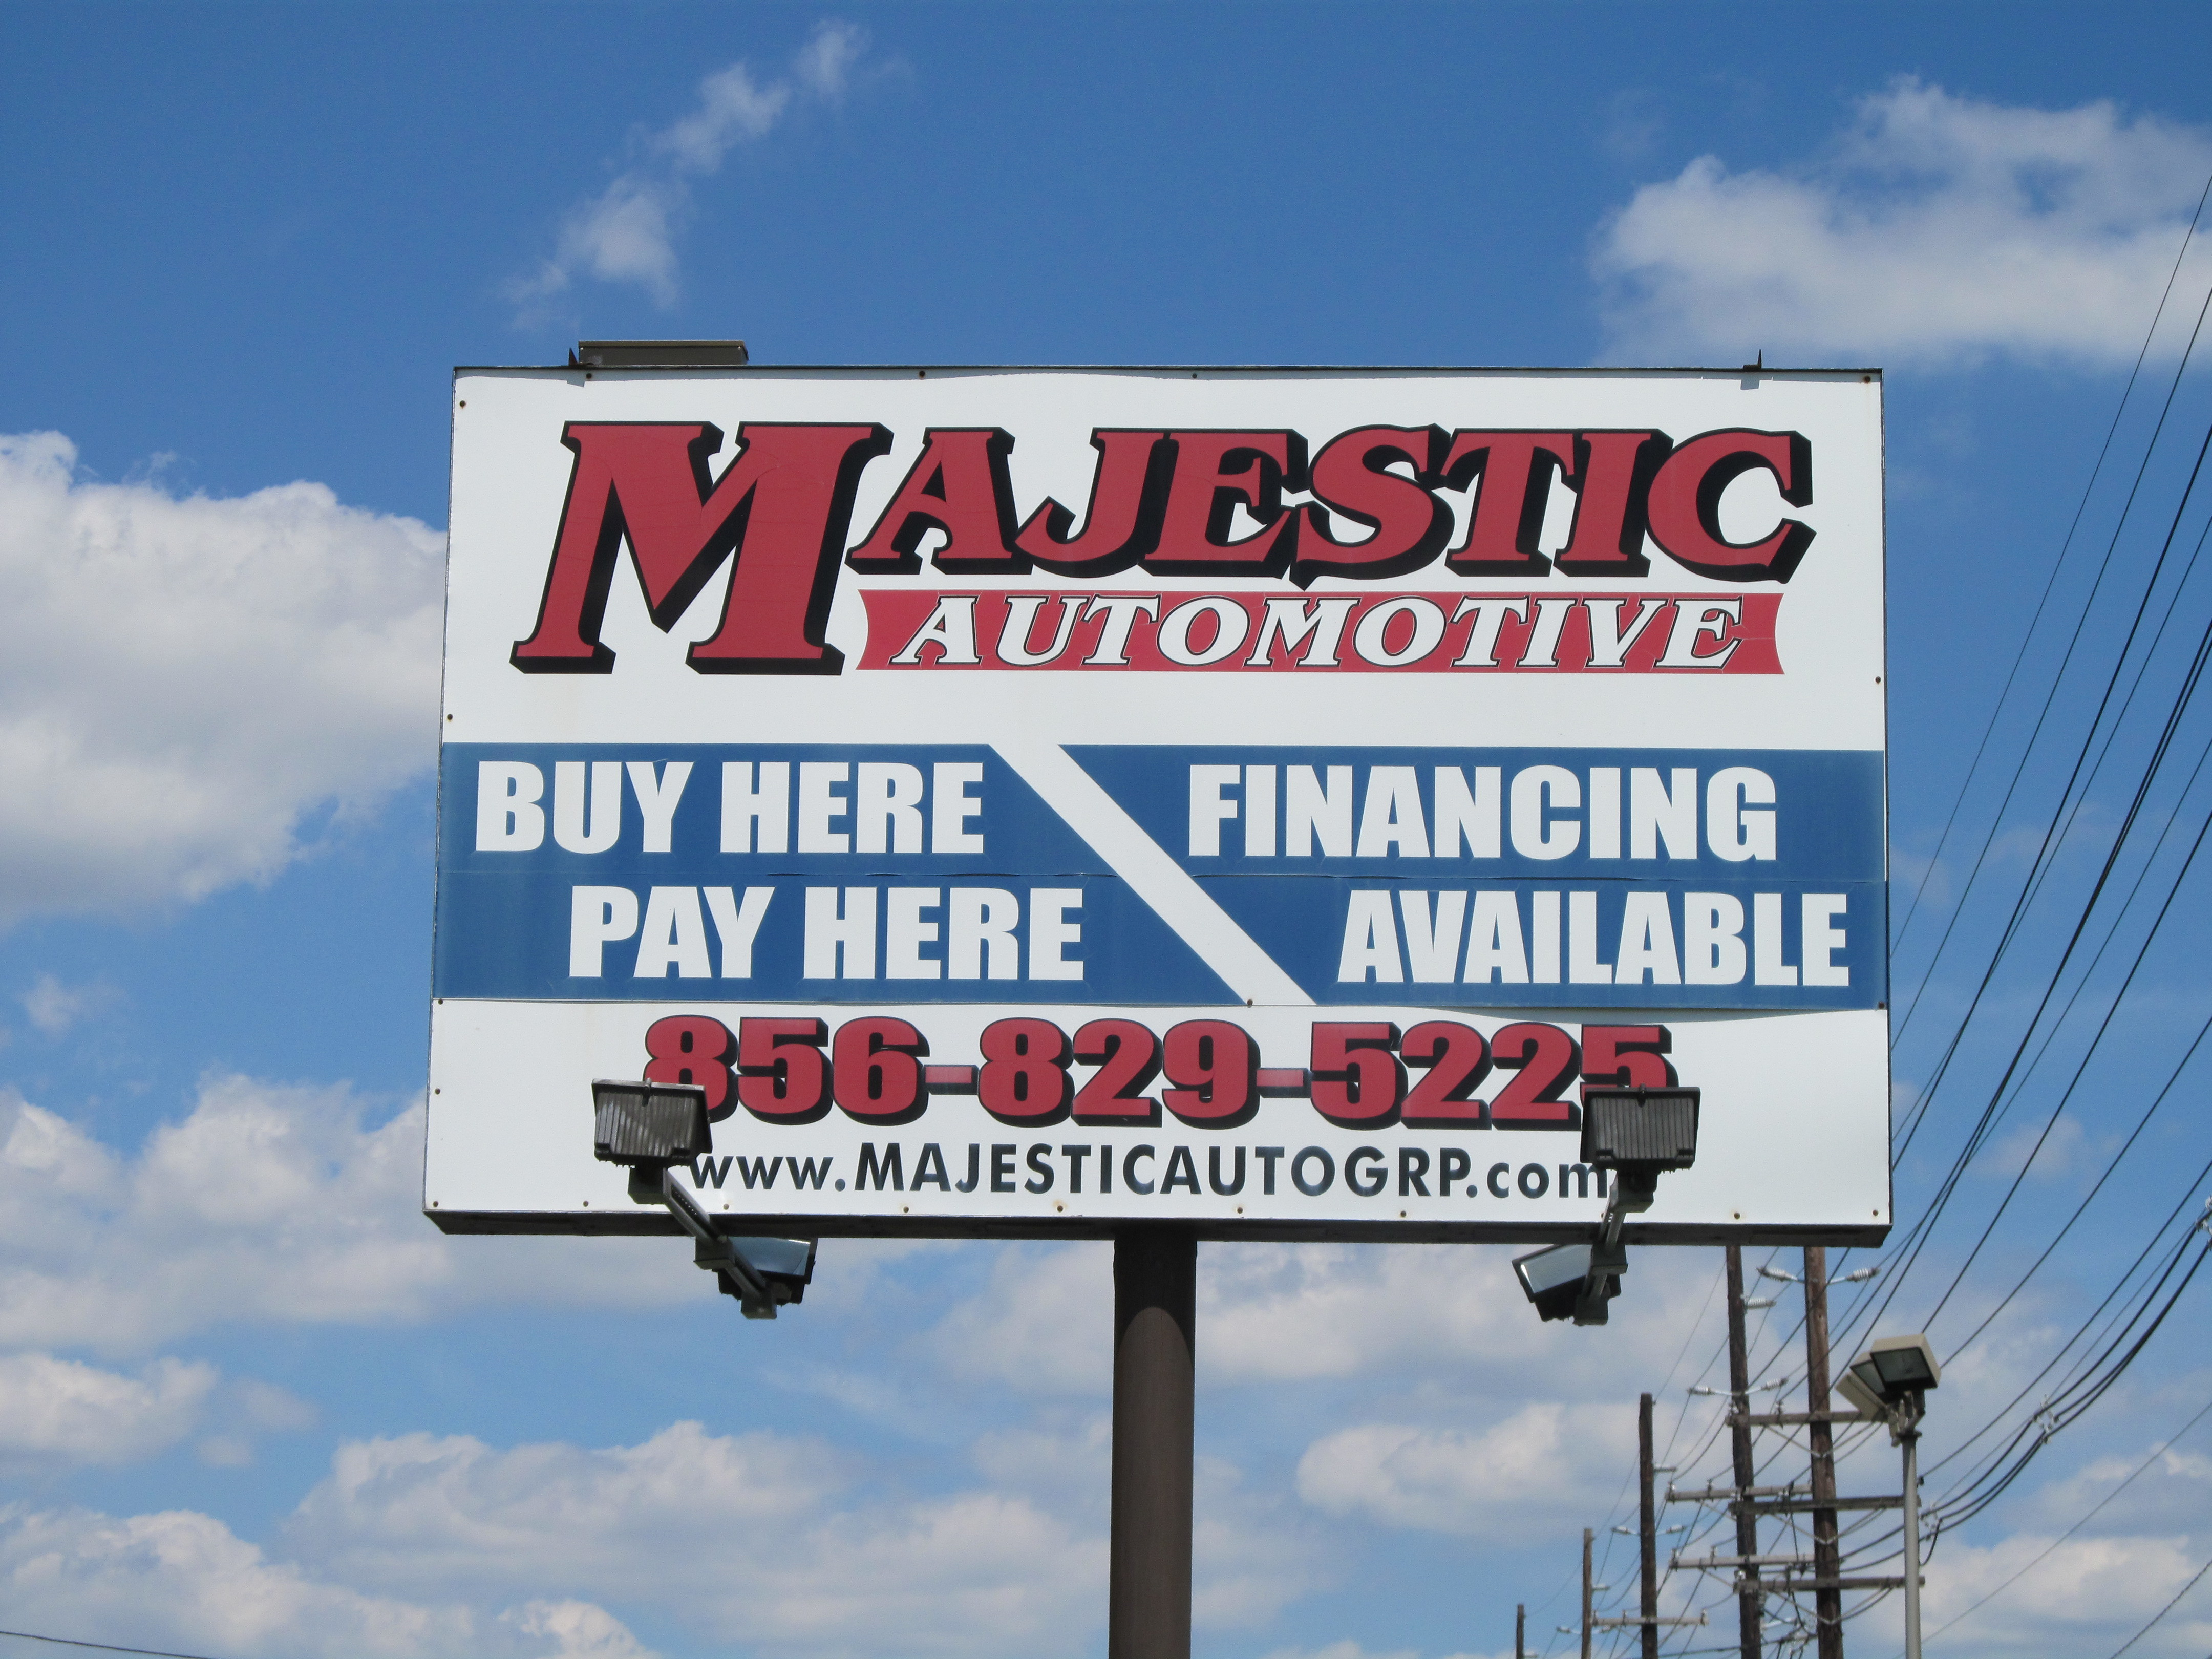 Majestic Automotive Group (premium) in Cinnaminson, NJ 08077